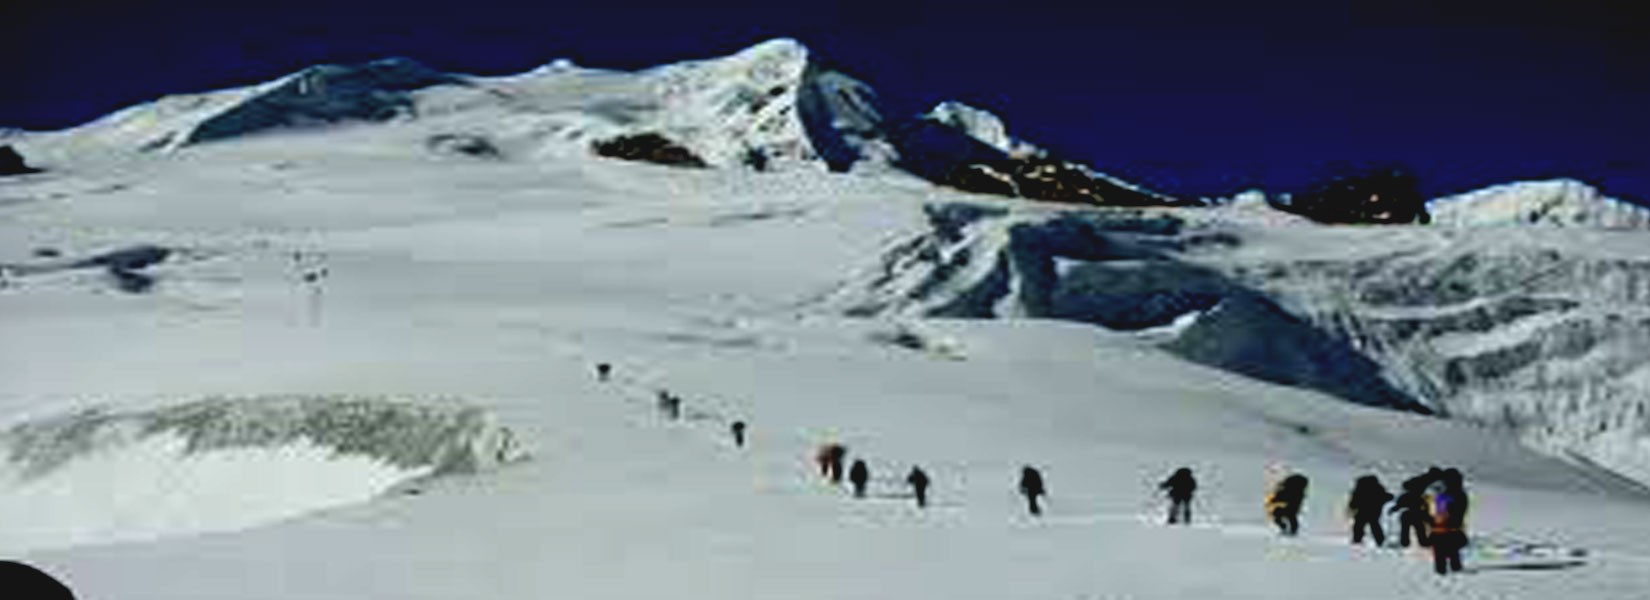 Mera Peak Trek and climbing